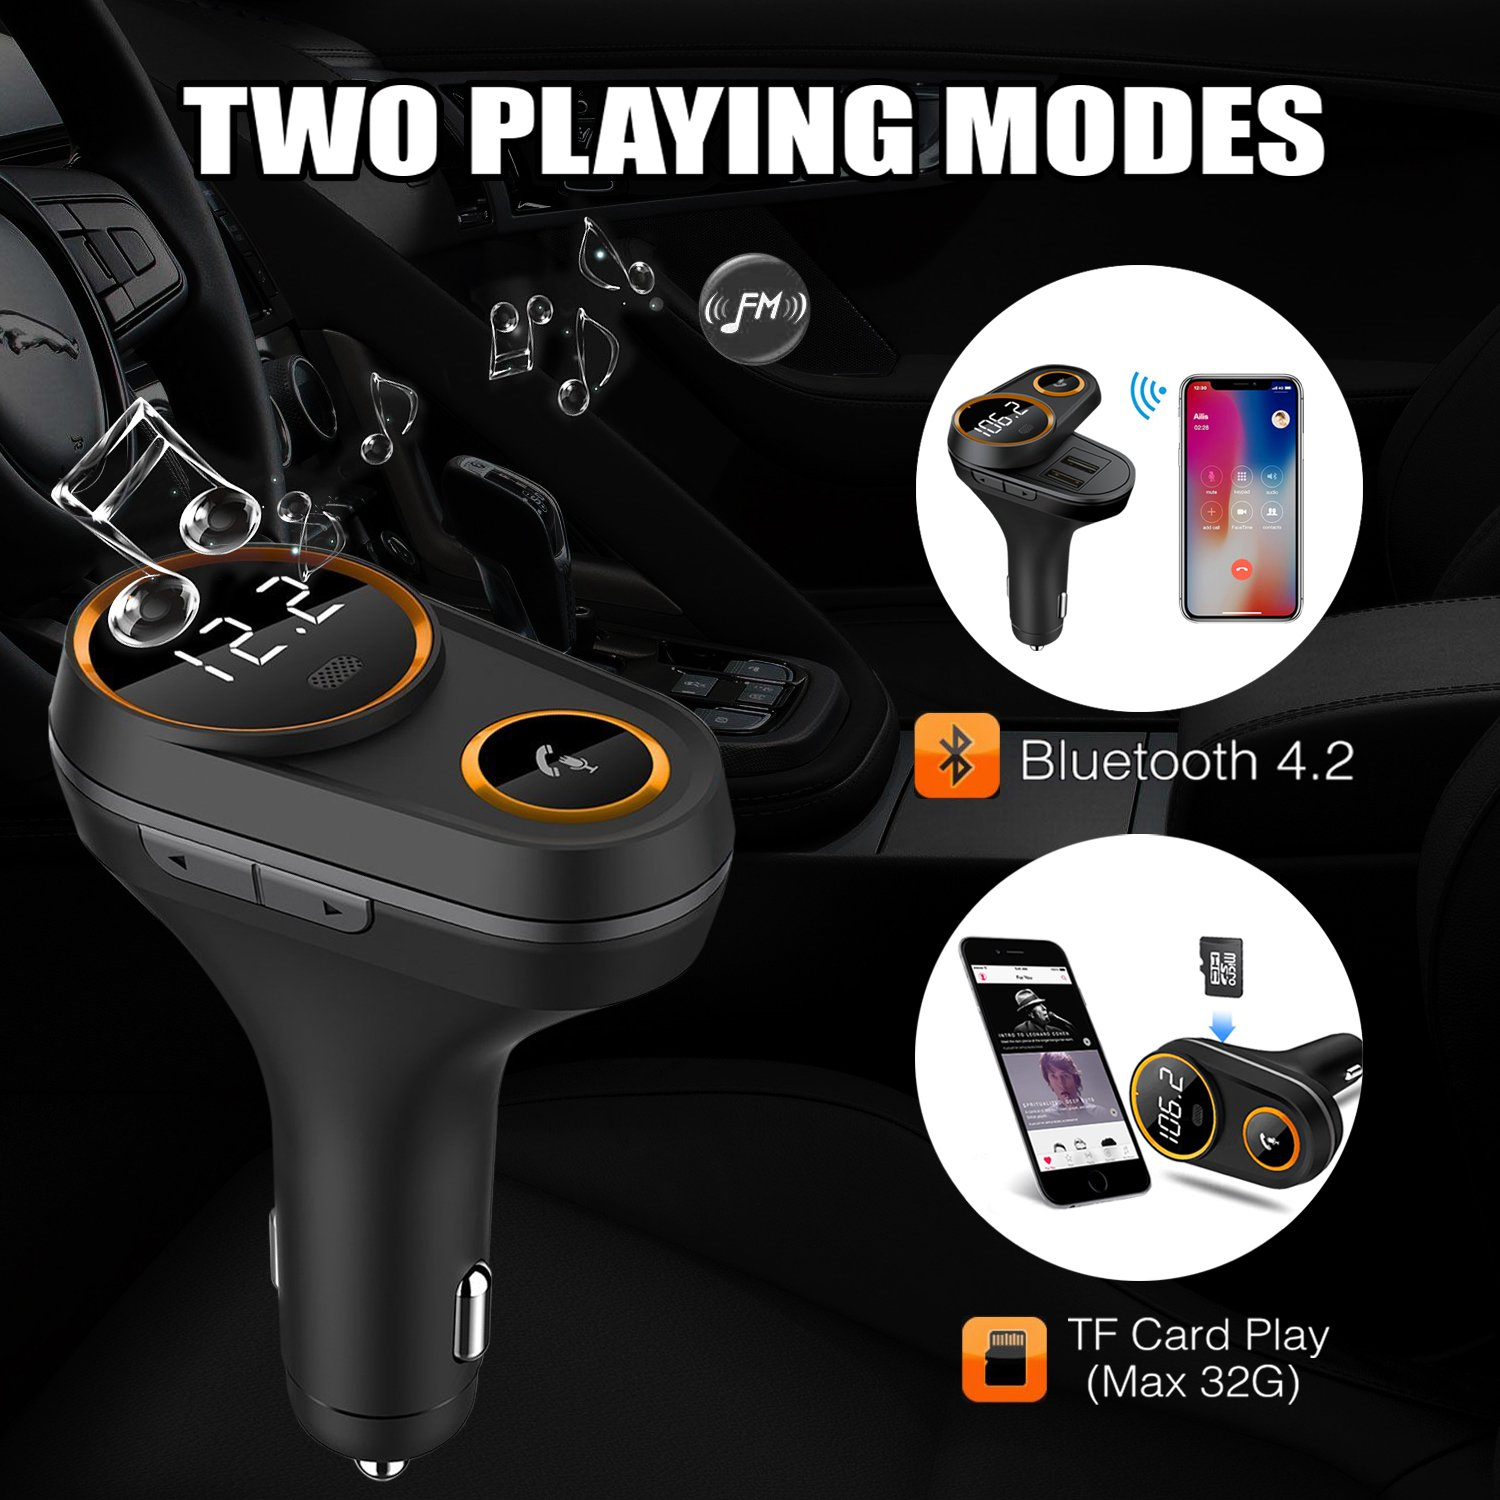 Bluetooth FM Transmitter for Car FM transmitter Bluetooth with Hand-Free Calling Voice navigation and LCD Display Music Player Support TF Card USB Flash Drive Dual 5V/2.4A USB Charge by PALMTONE (Image #2)